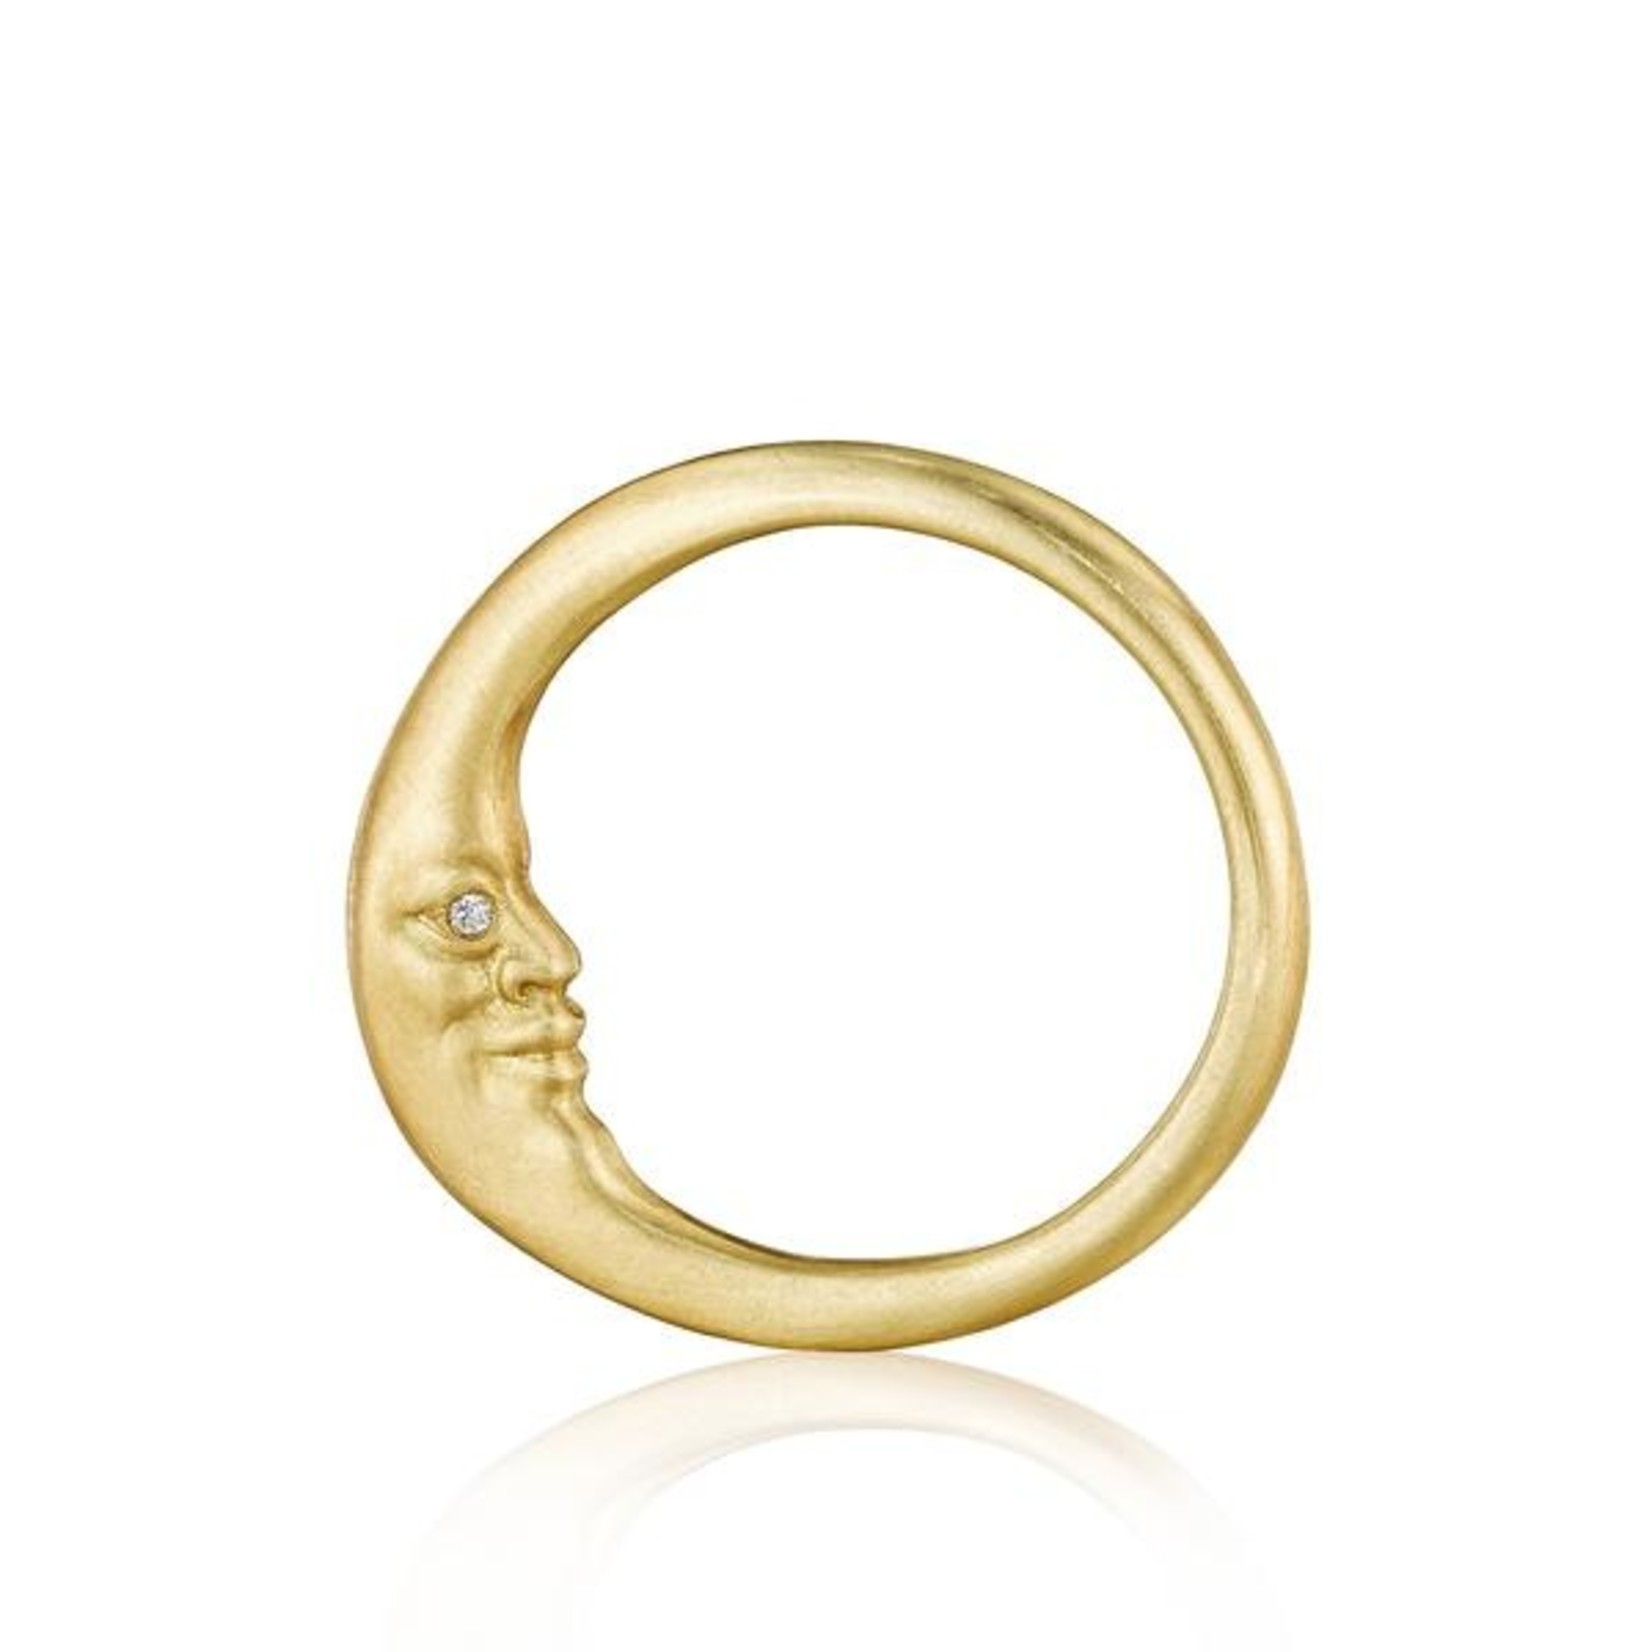 ANTHONY LENT CRESCENT MOON FACE WITH DIAMOND EYE RING